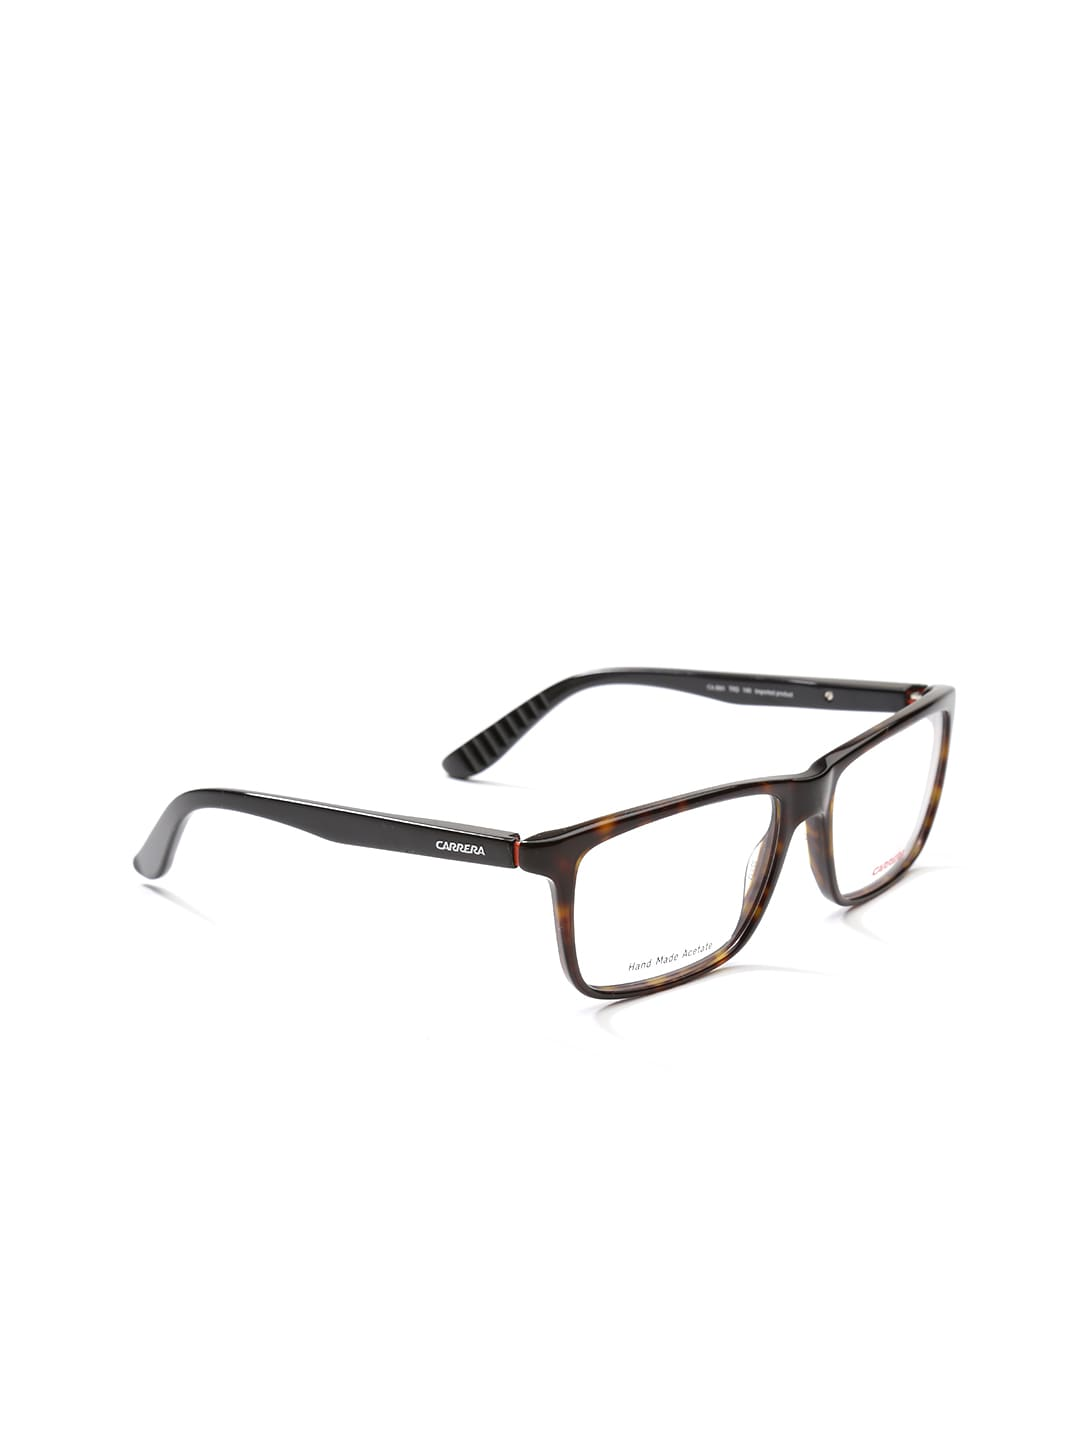 men carrera frames buy men carrera frames online in india